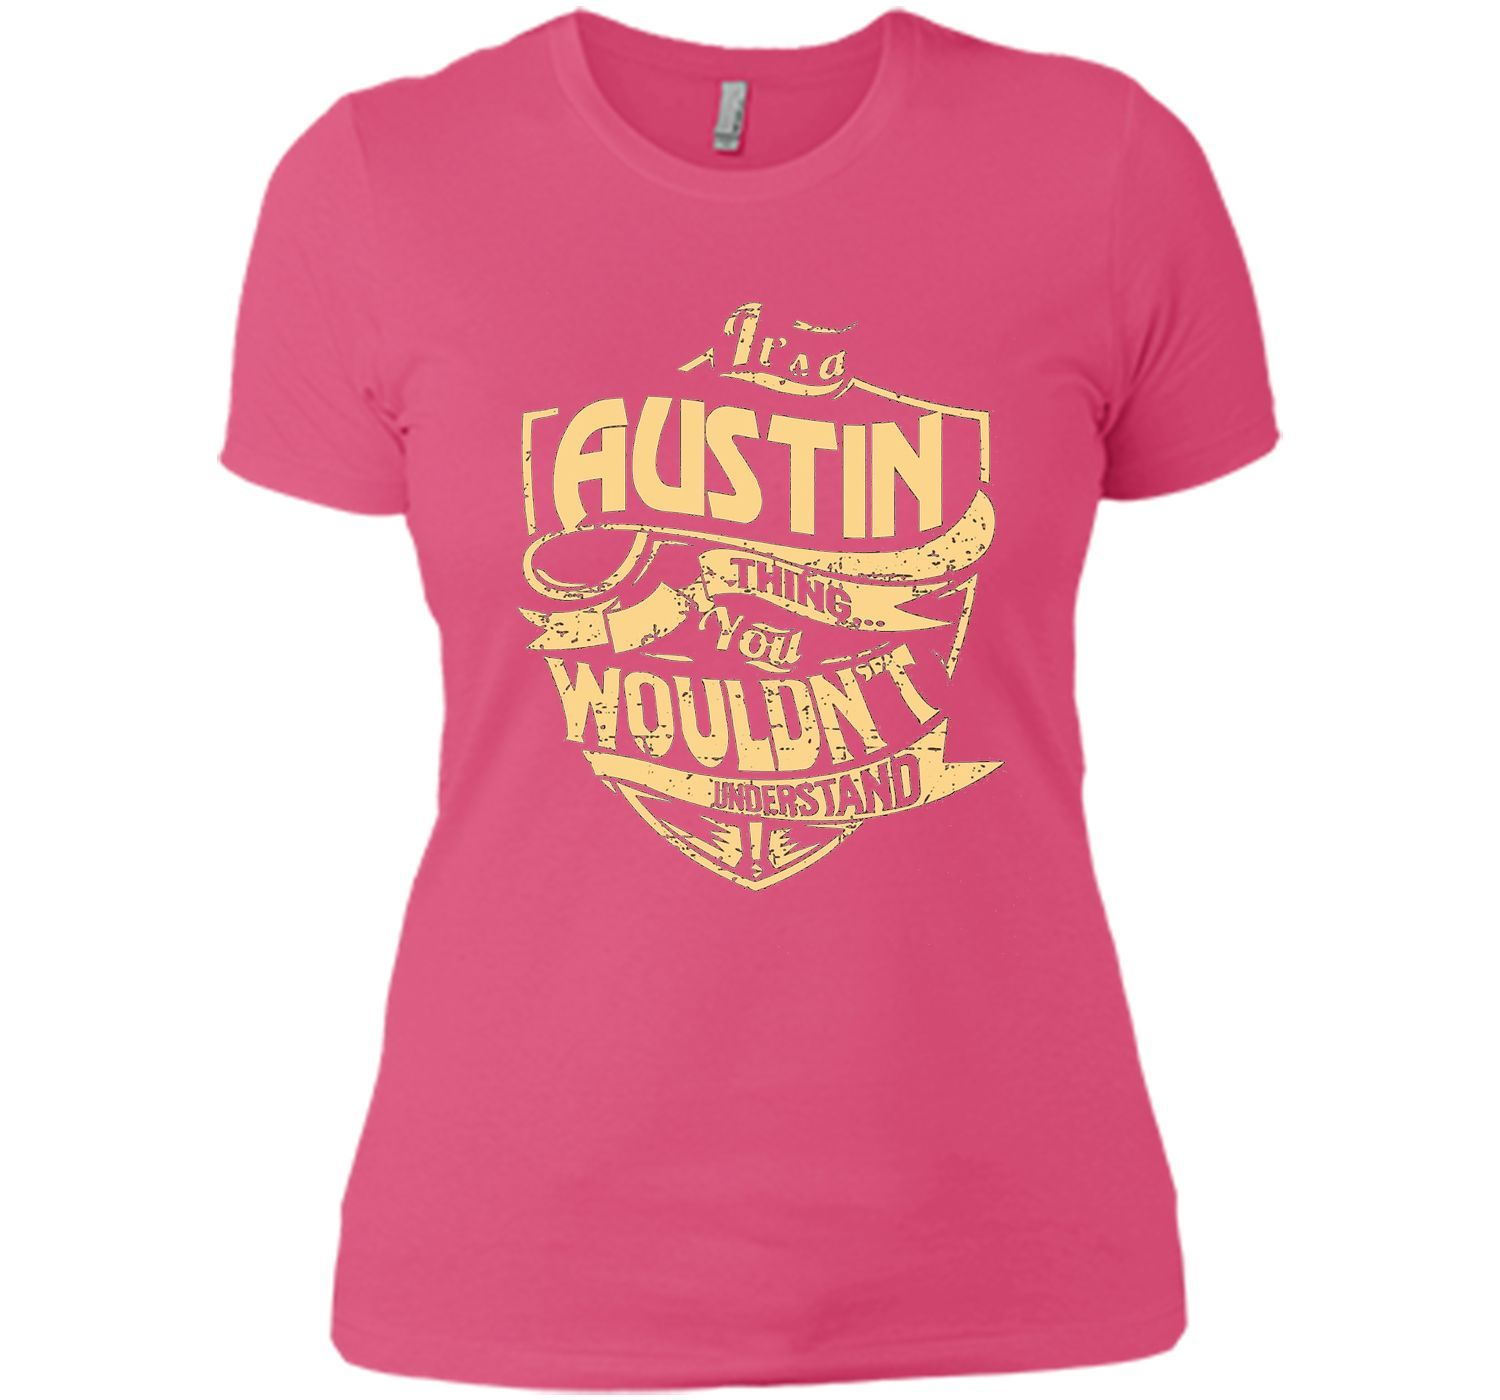 It's A Austin Thing You Wouldn't Understand Tshirt cool shirt